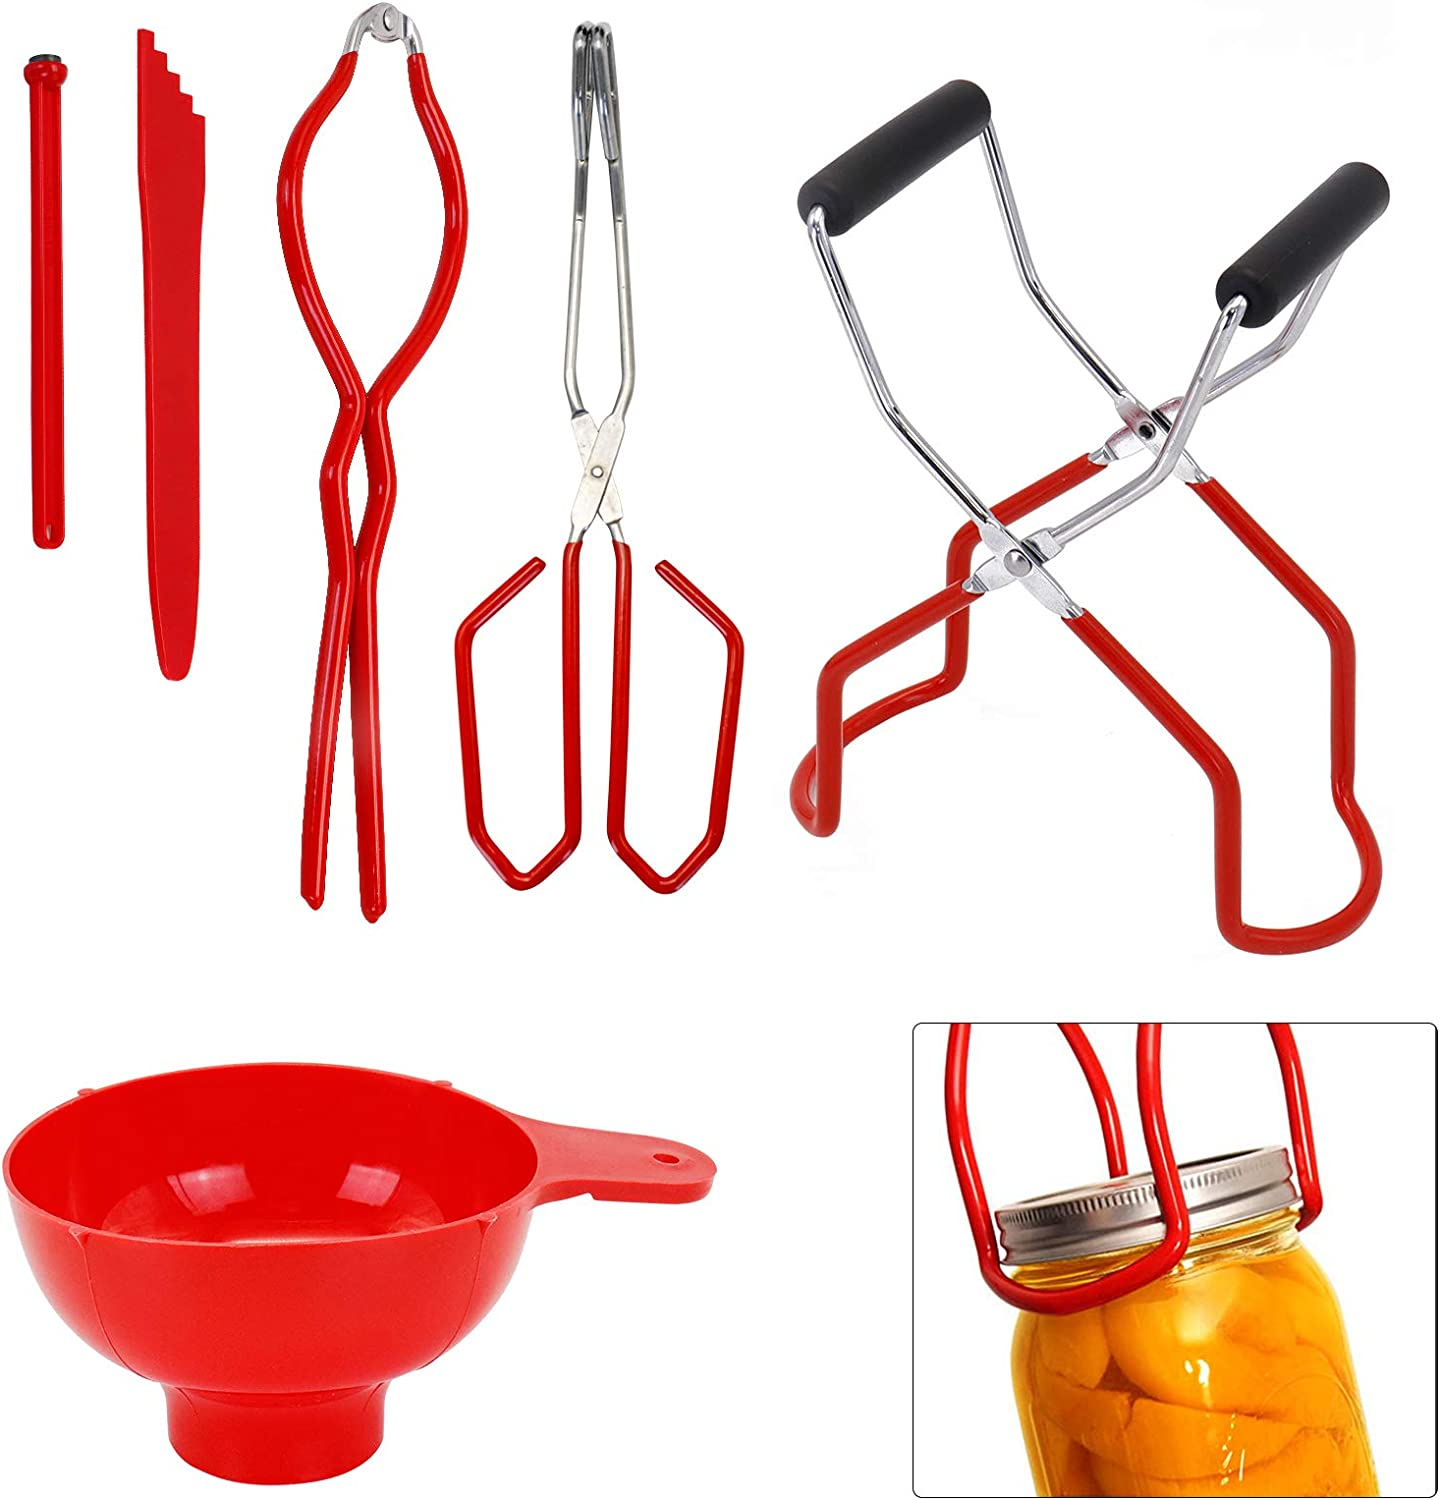 Canning Kits, Canning Jar Lifter with Grip Handles, Jar Tongs, Jar Wrench, Lid Lifter, Funnel for Wide Mouth and Regular Jars in Home Canning Supplies, Kitchen Tool Anti-Scald Clip Suit (Red)